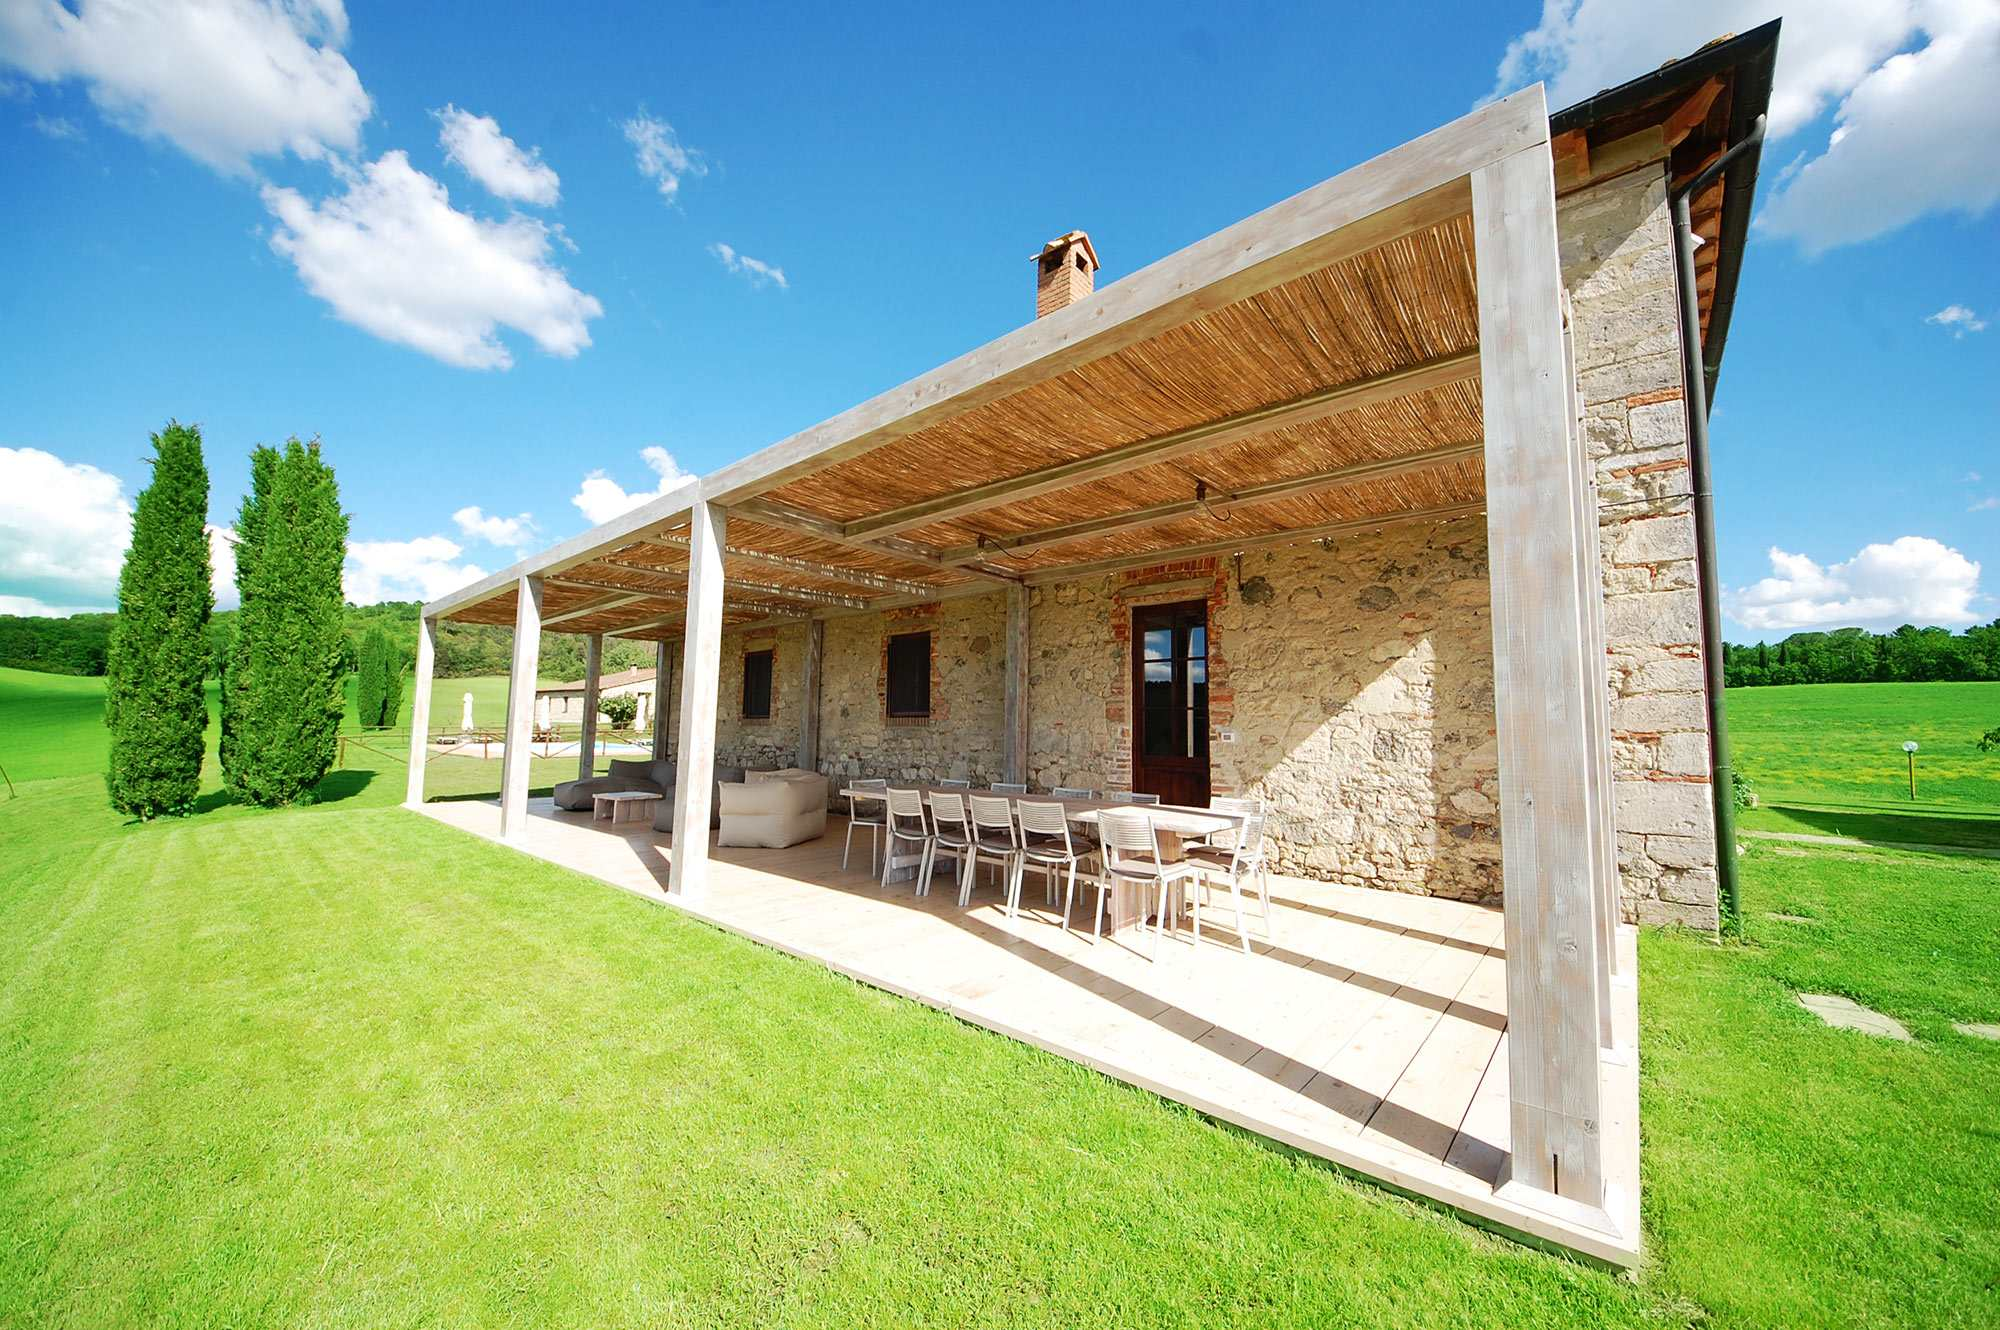 rent villa in tuscany with veranda